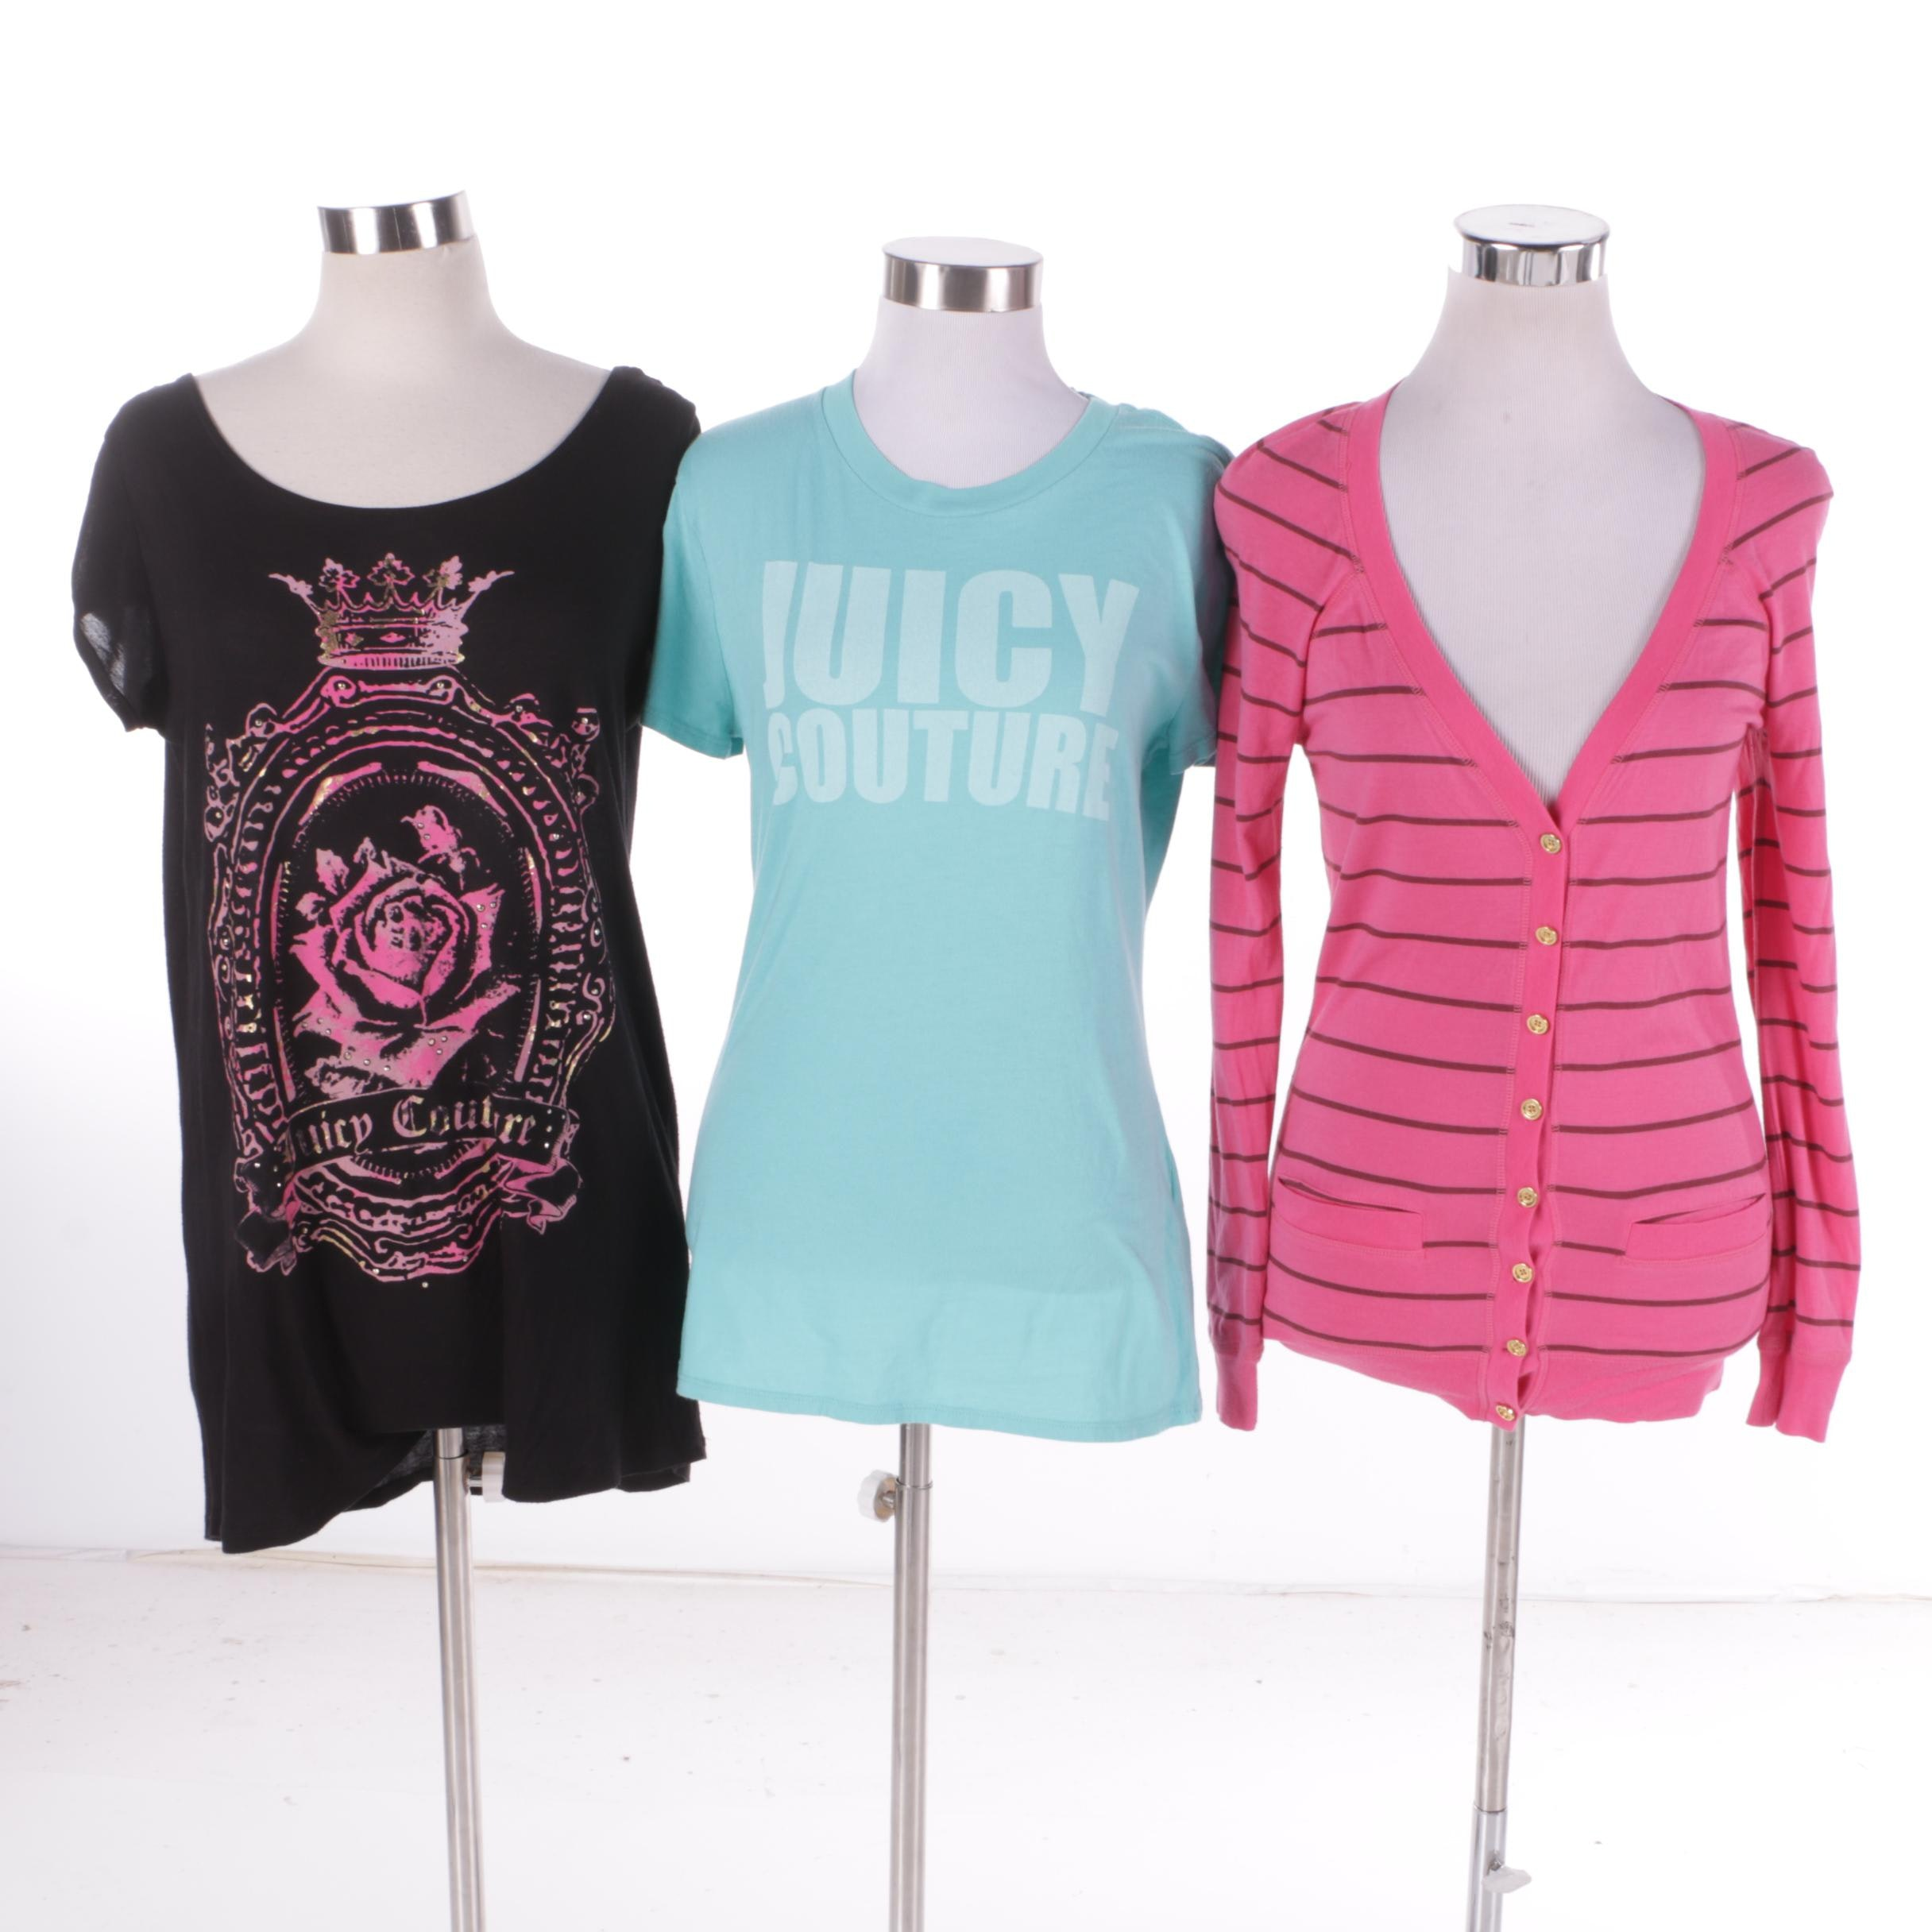 Women's Juicy Couture Shirts and Cardigan